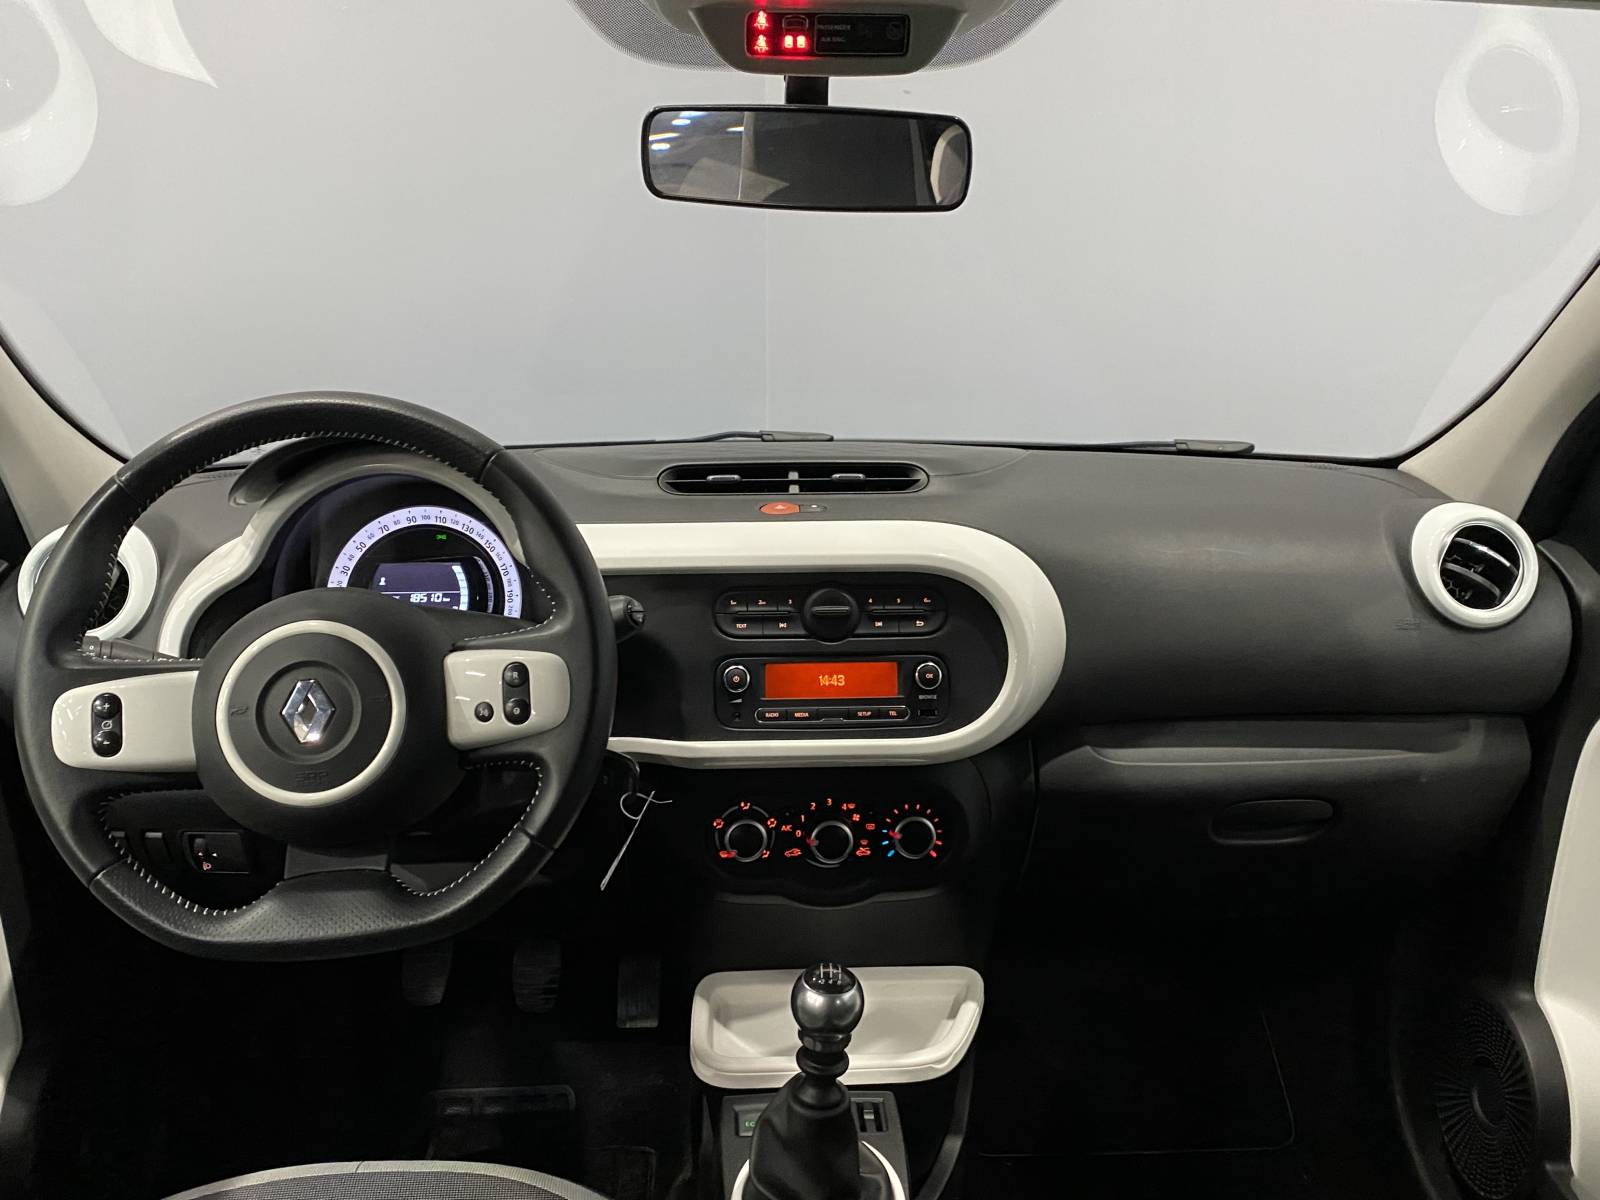 RENAULT Twingo III 0.9 TCe 90 Energy E6C - véhicule d'occasion - Site Internet Faurie - Renault - Faurie Auto Limoges - 87000 - Limoges - 7